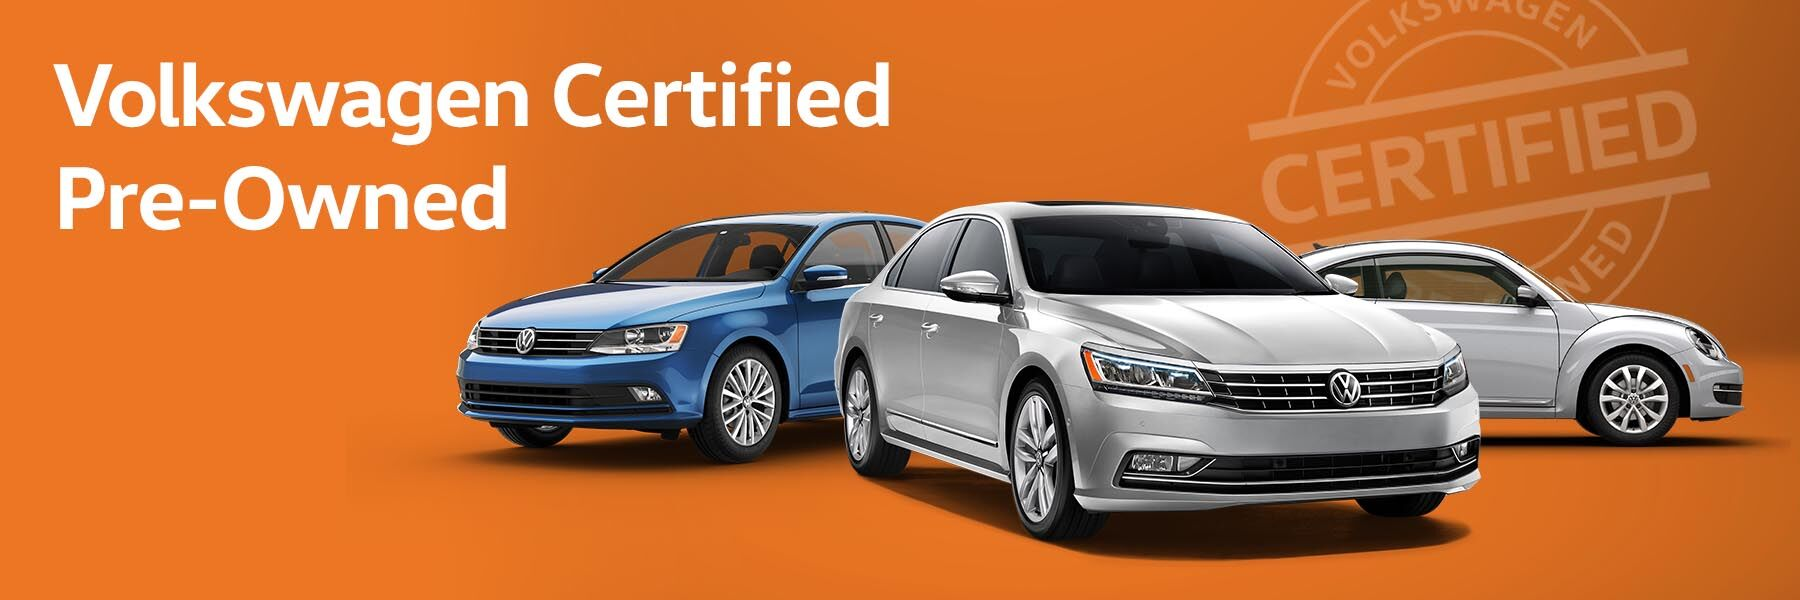 Volkswagen Certified Pre-Owned in Las Vegas, NV